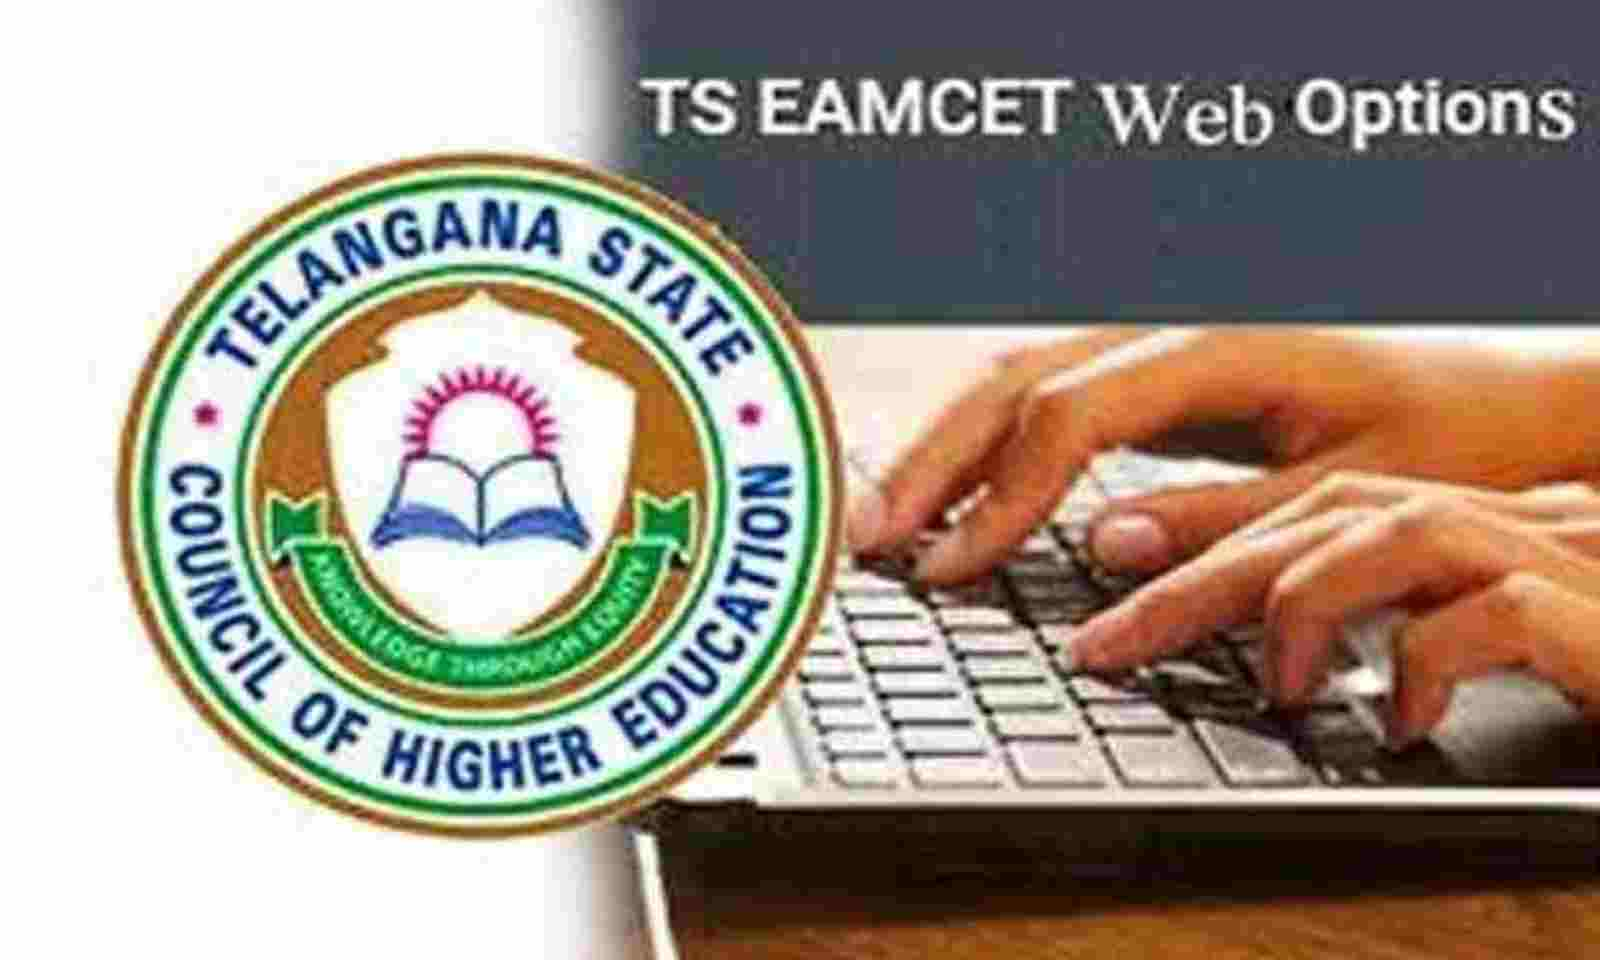 TS EAMCET web options process begins, 18210 new courses created